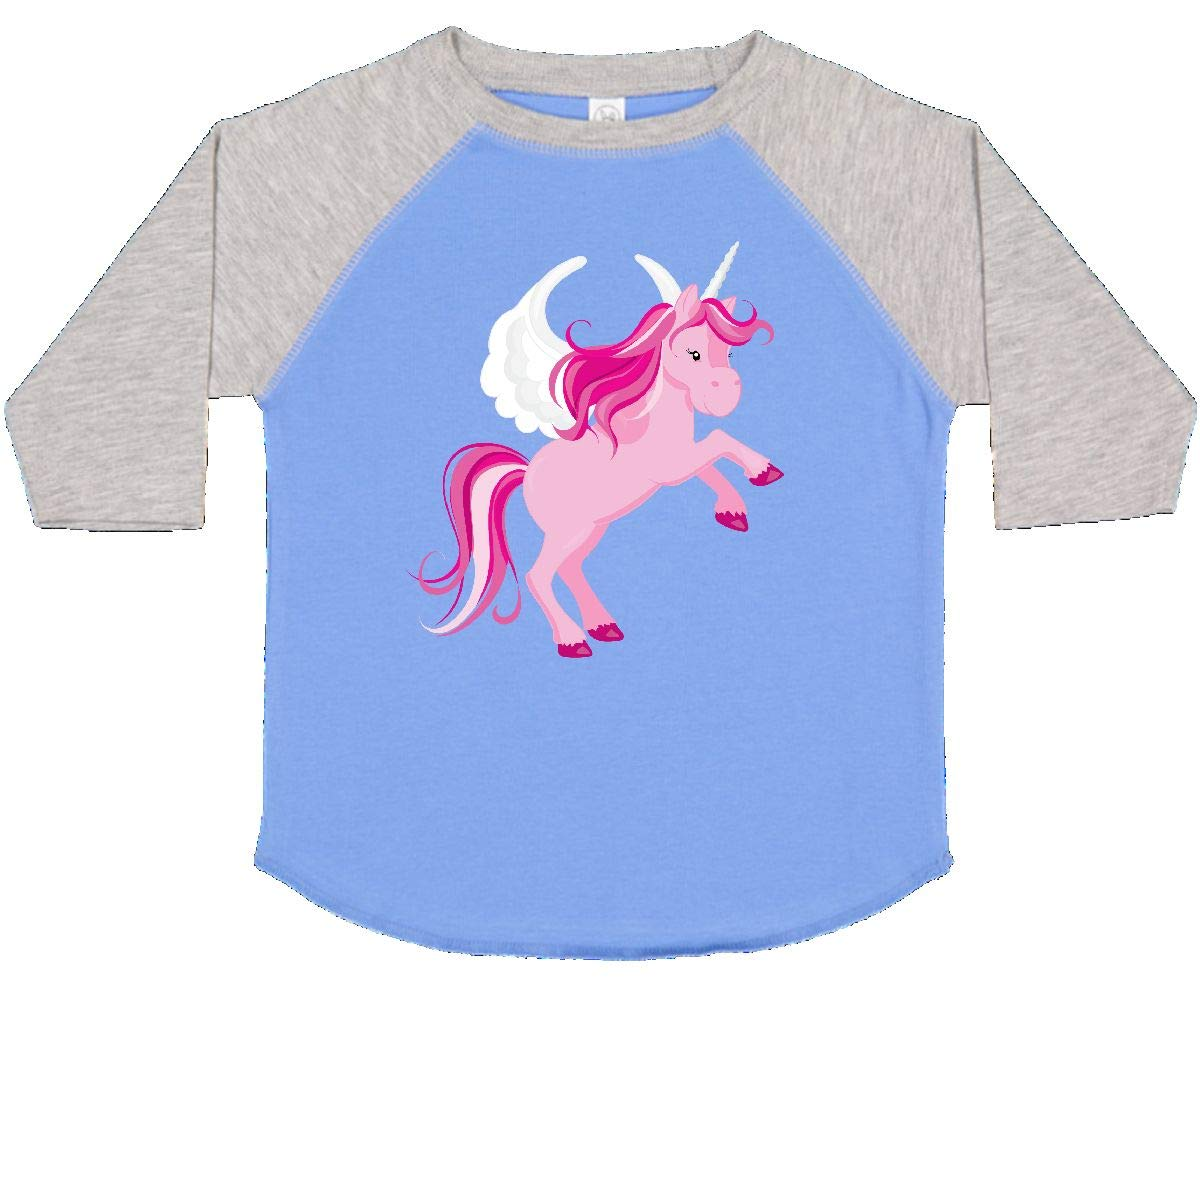 inktastic Pink Unicorn with Wings Toddler T-Shirt